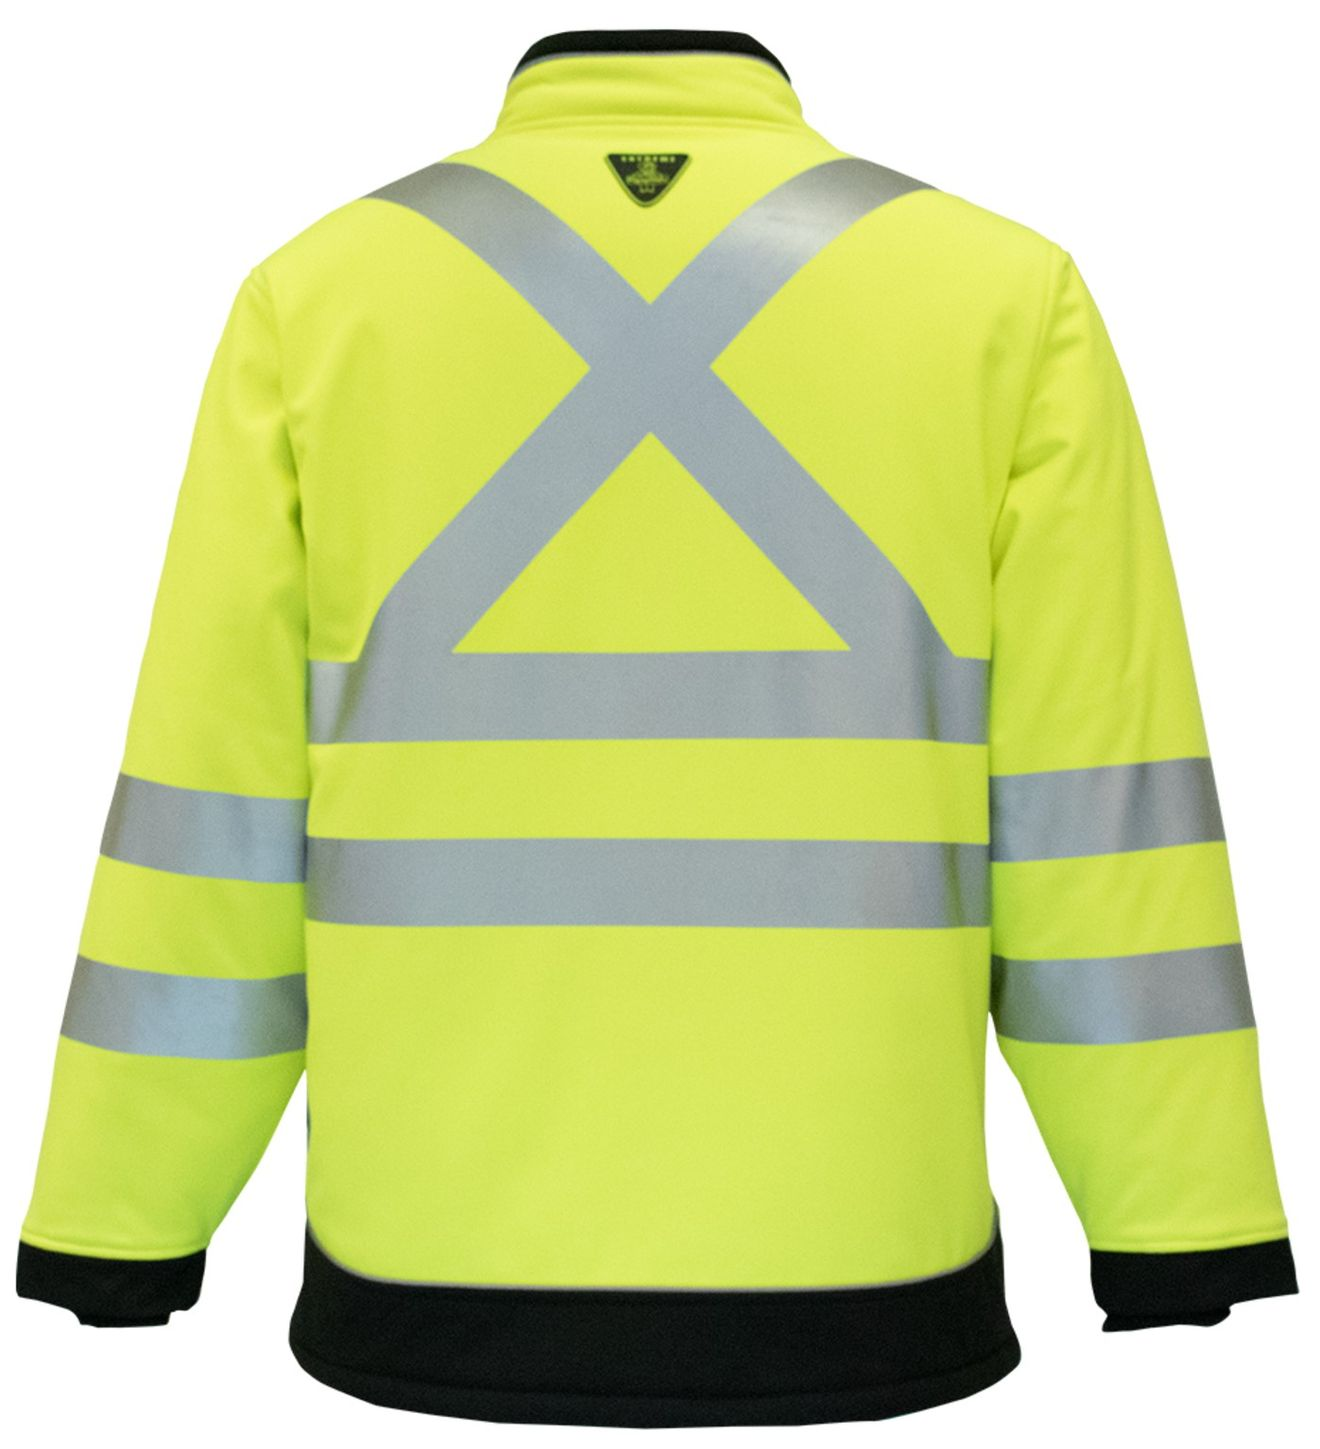 RefrigiWear 0796 HiVis Extreme Collection Softshell Jacket Back